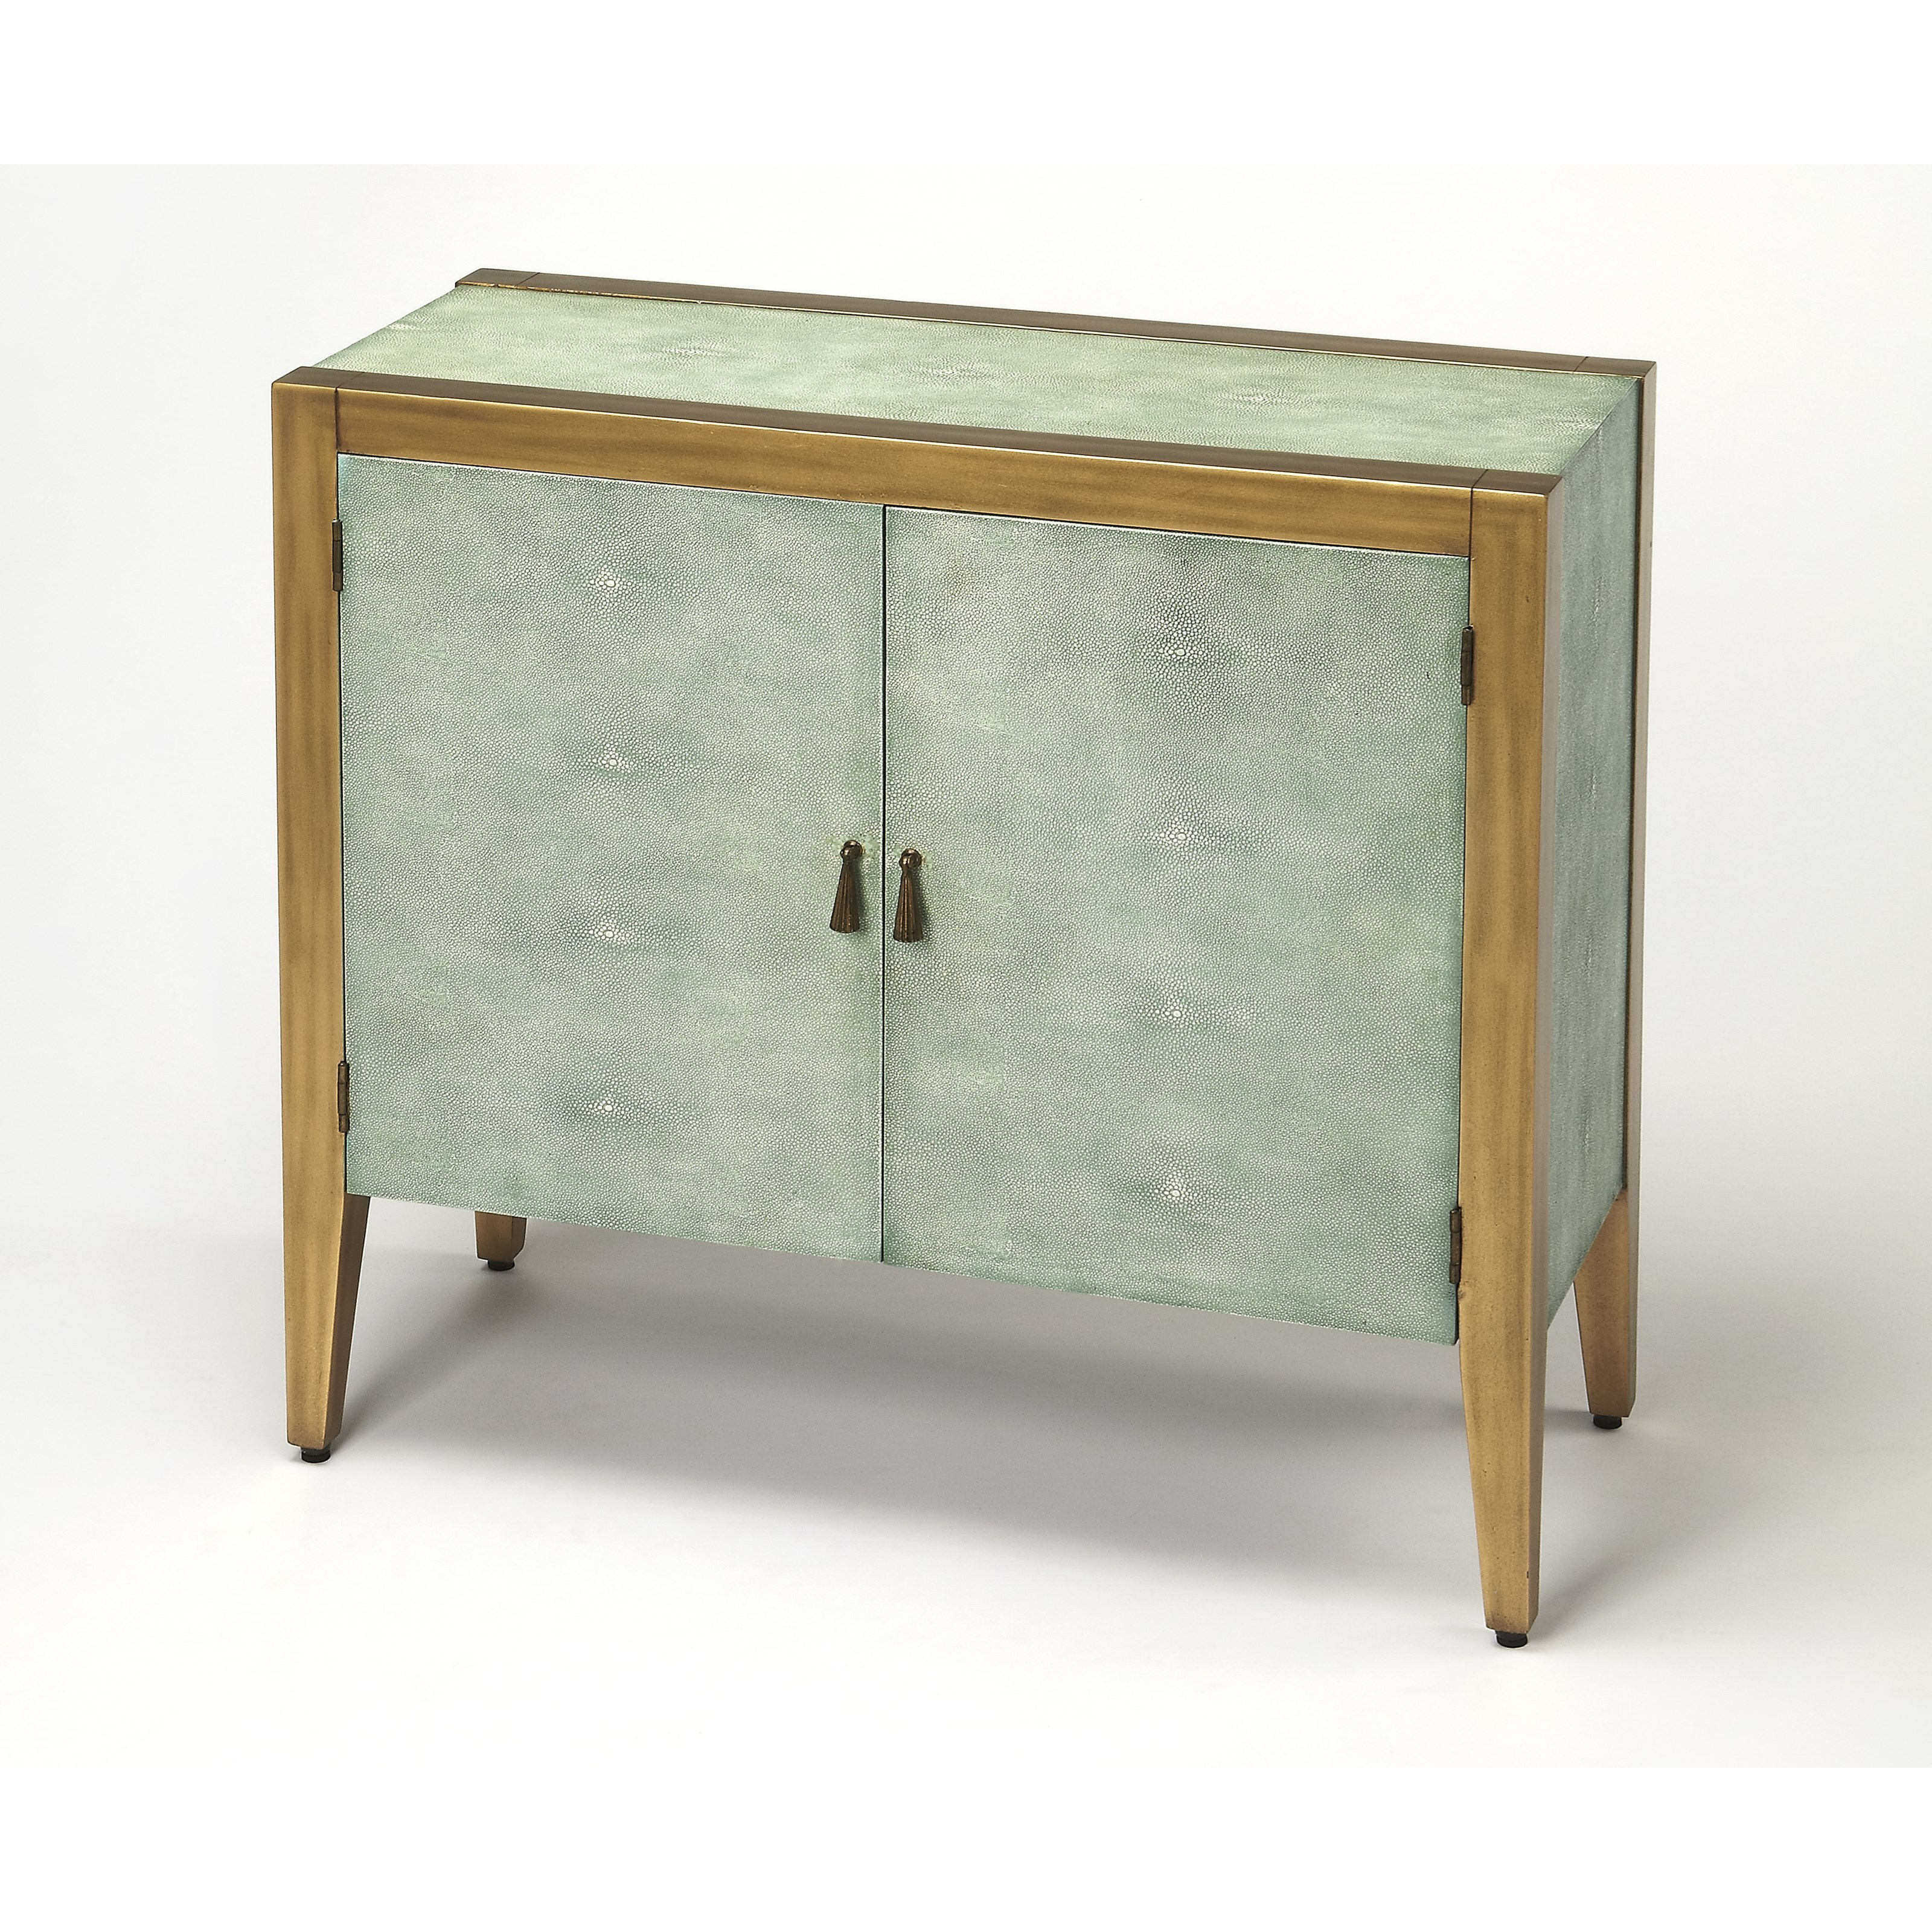 Butler specialty company cosmopolitan apollonia shagreen console cabinet wayside furniture - Sofa table with cabinets ...